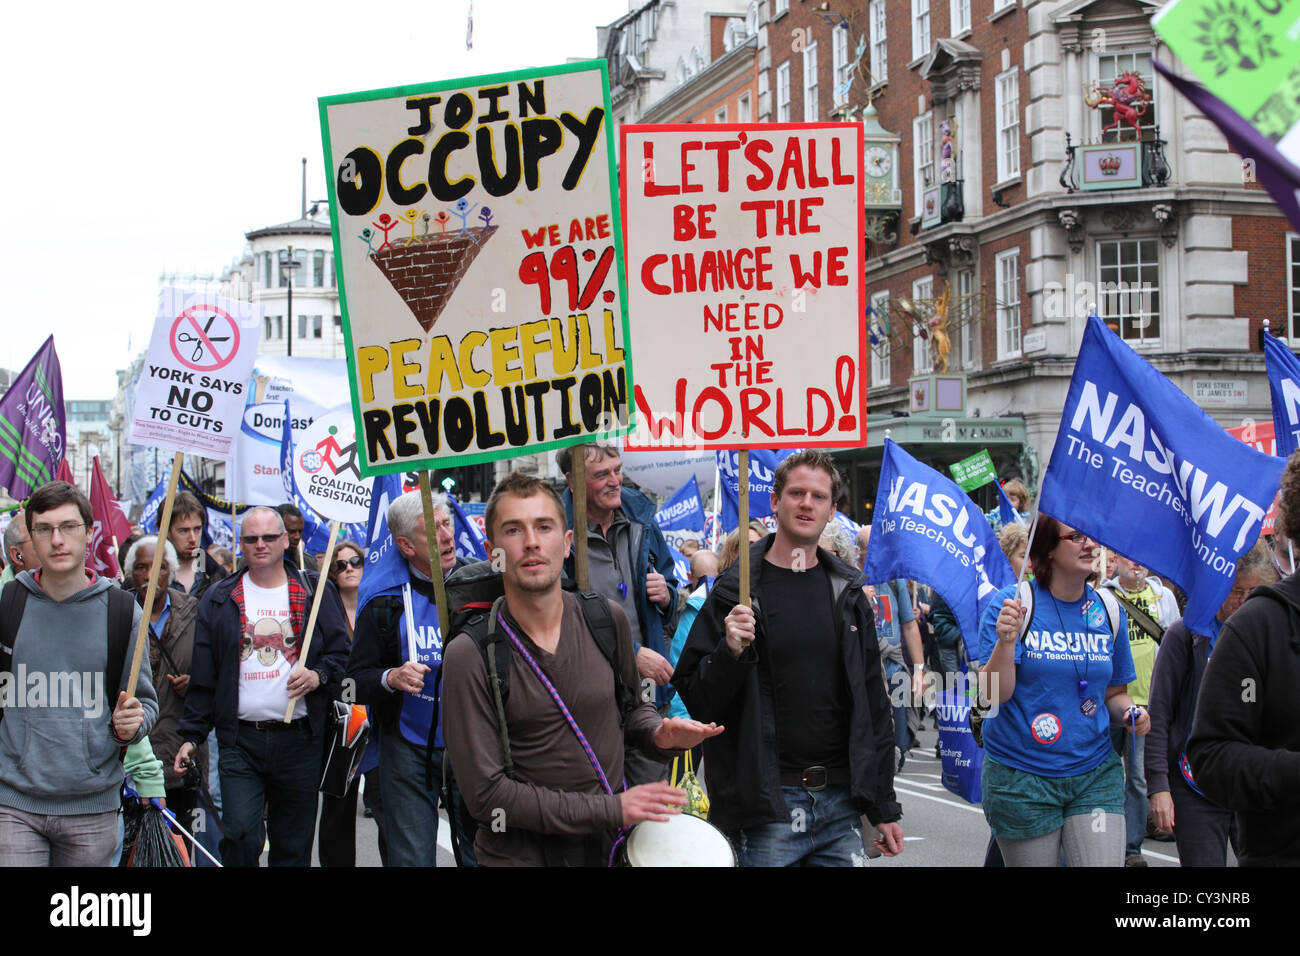 A Future That Works march Piccadilly London, Anti cuts, Anti Austerity pro Occupy movement. - Stock Image